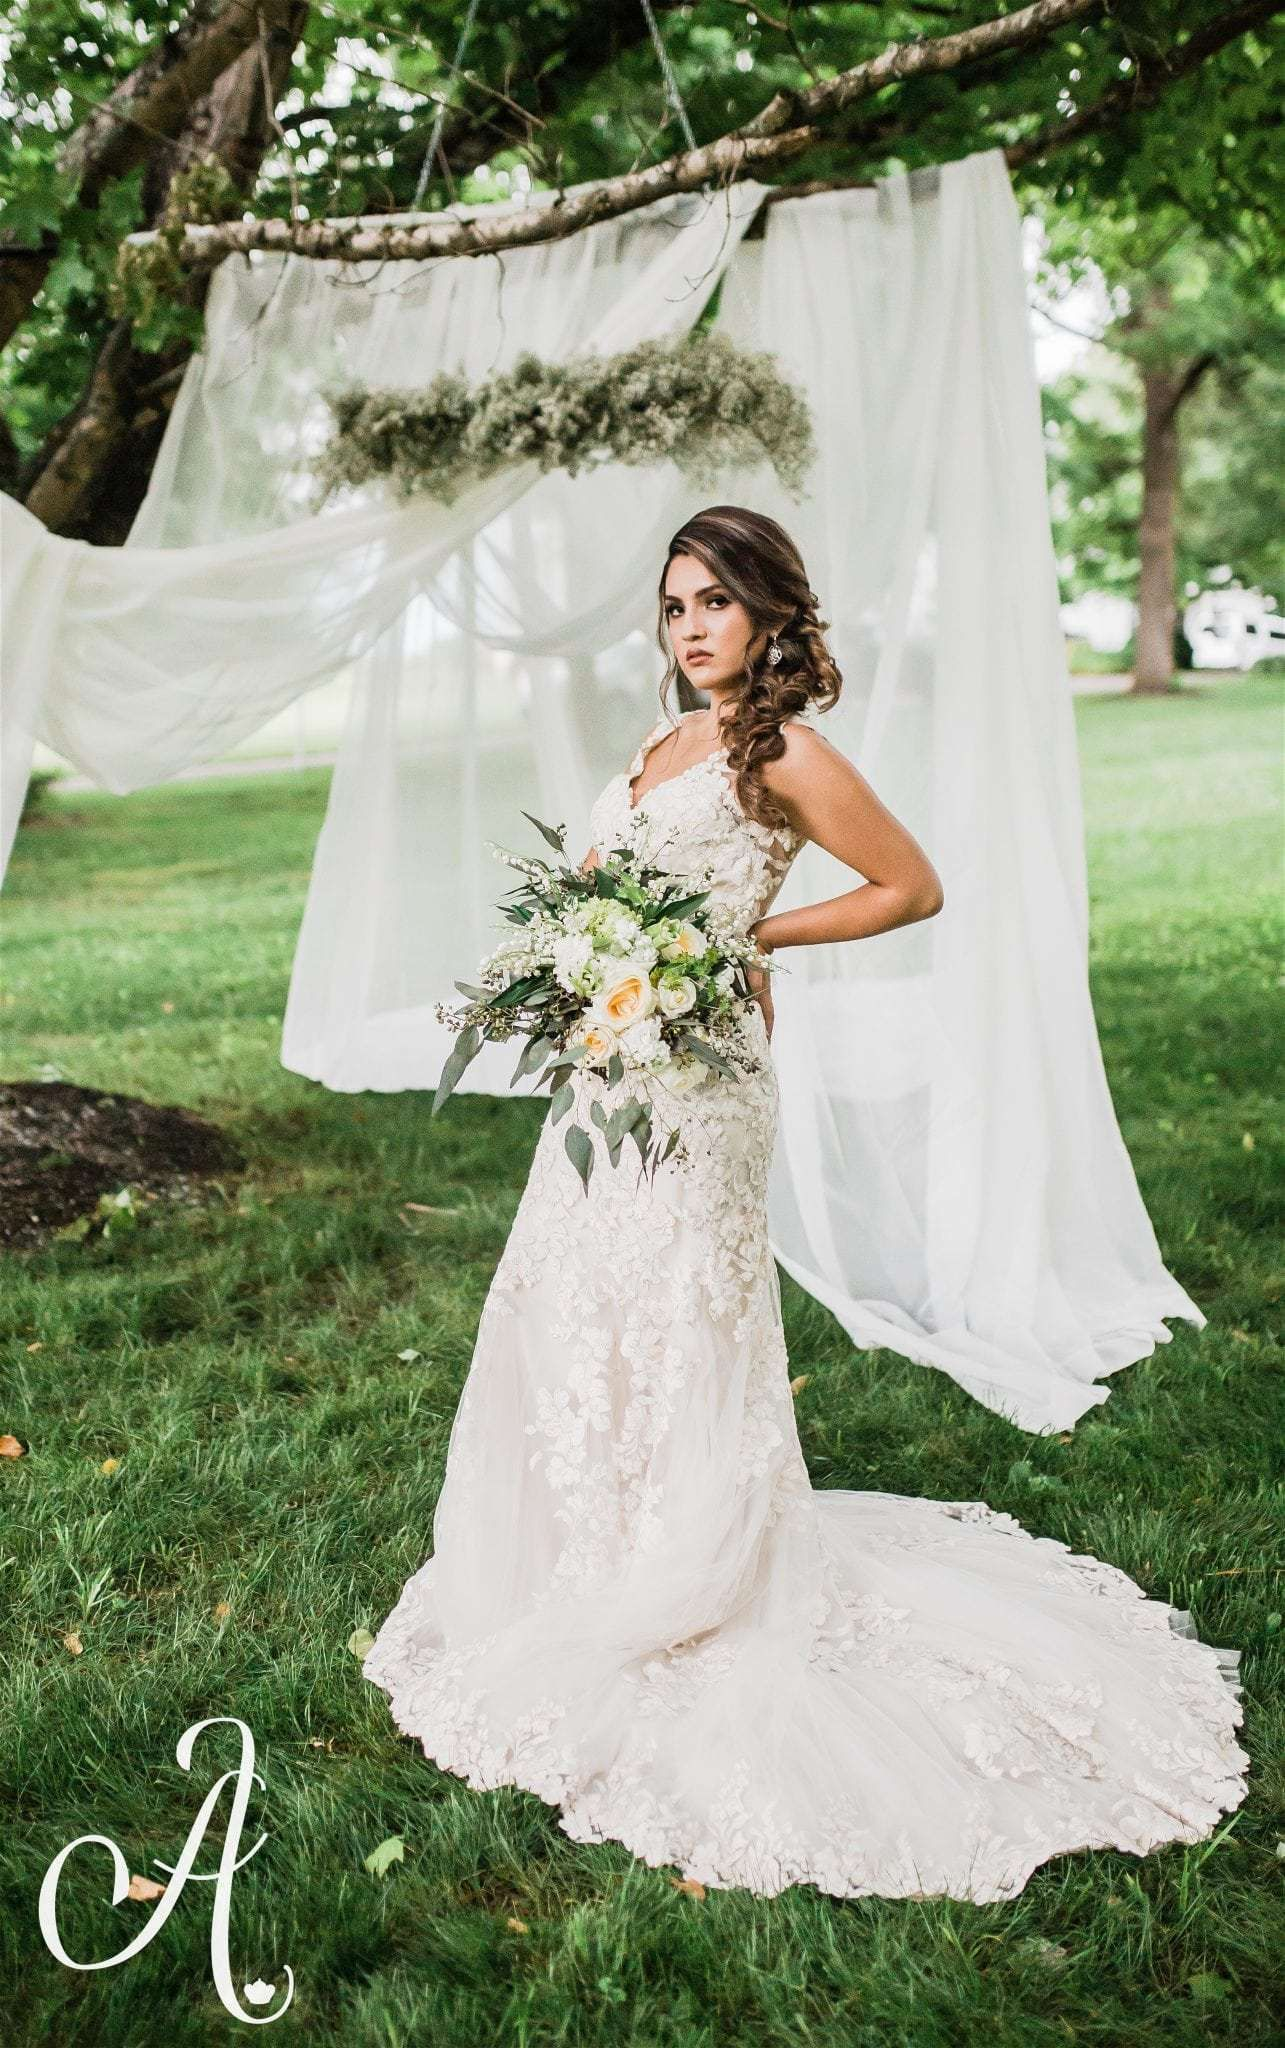 Knoxville Wedding Gowns Proms Formal Wear Prom Gowns Prom Dresses Homecoming D Plus Size Bridal Dresses Plus Size Wedding Gowns Military Ball Dresses